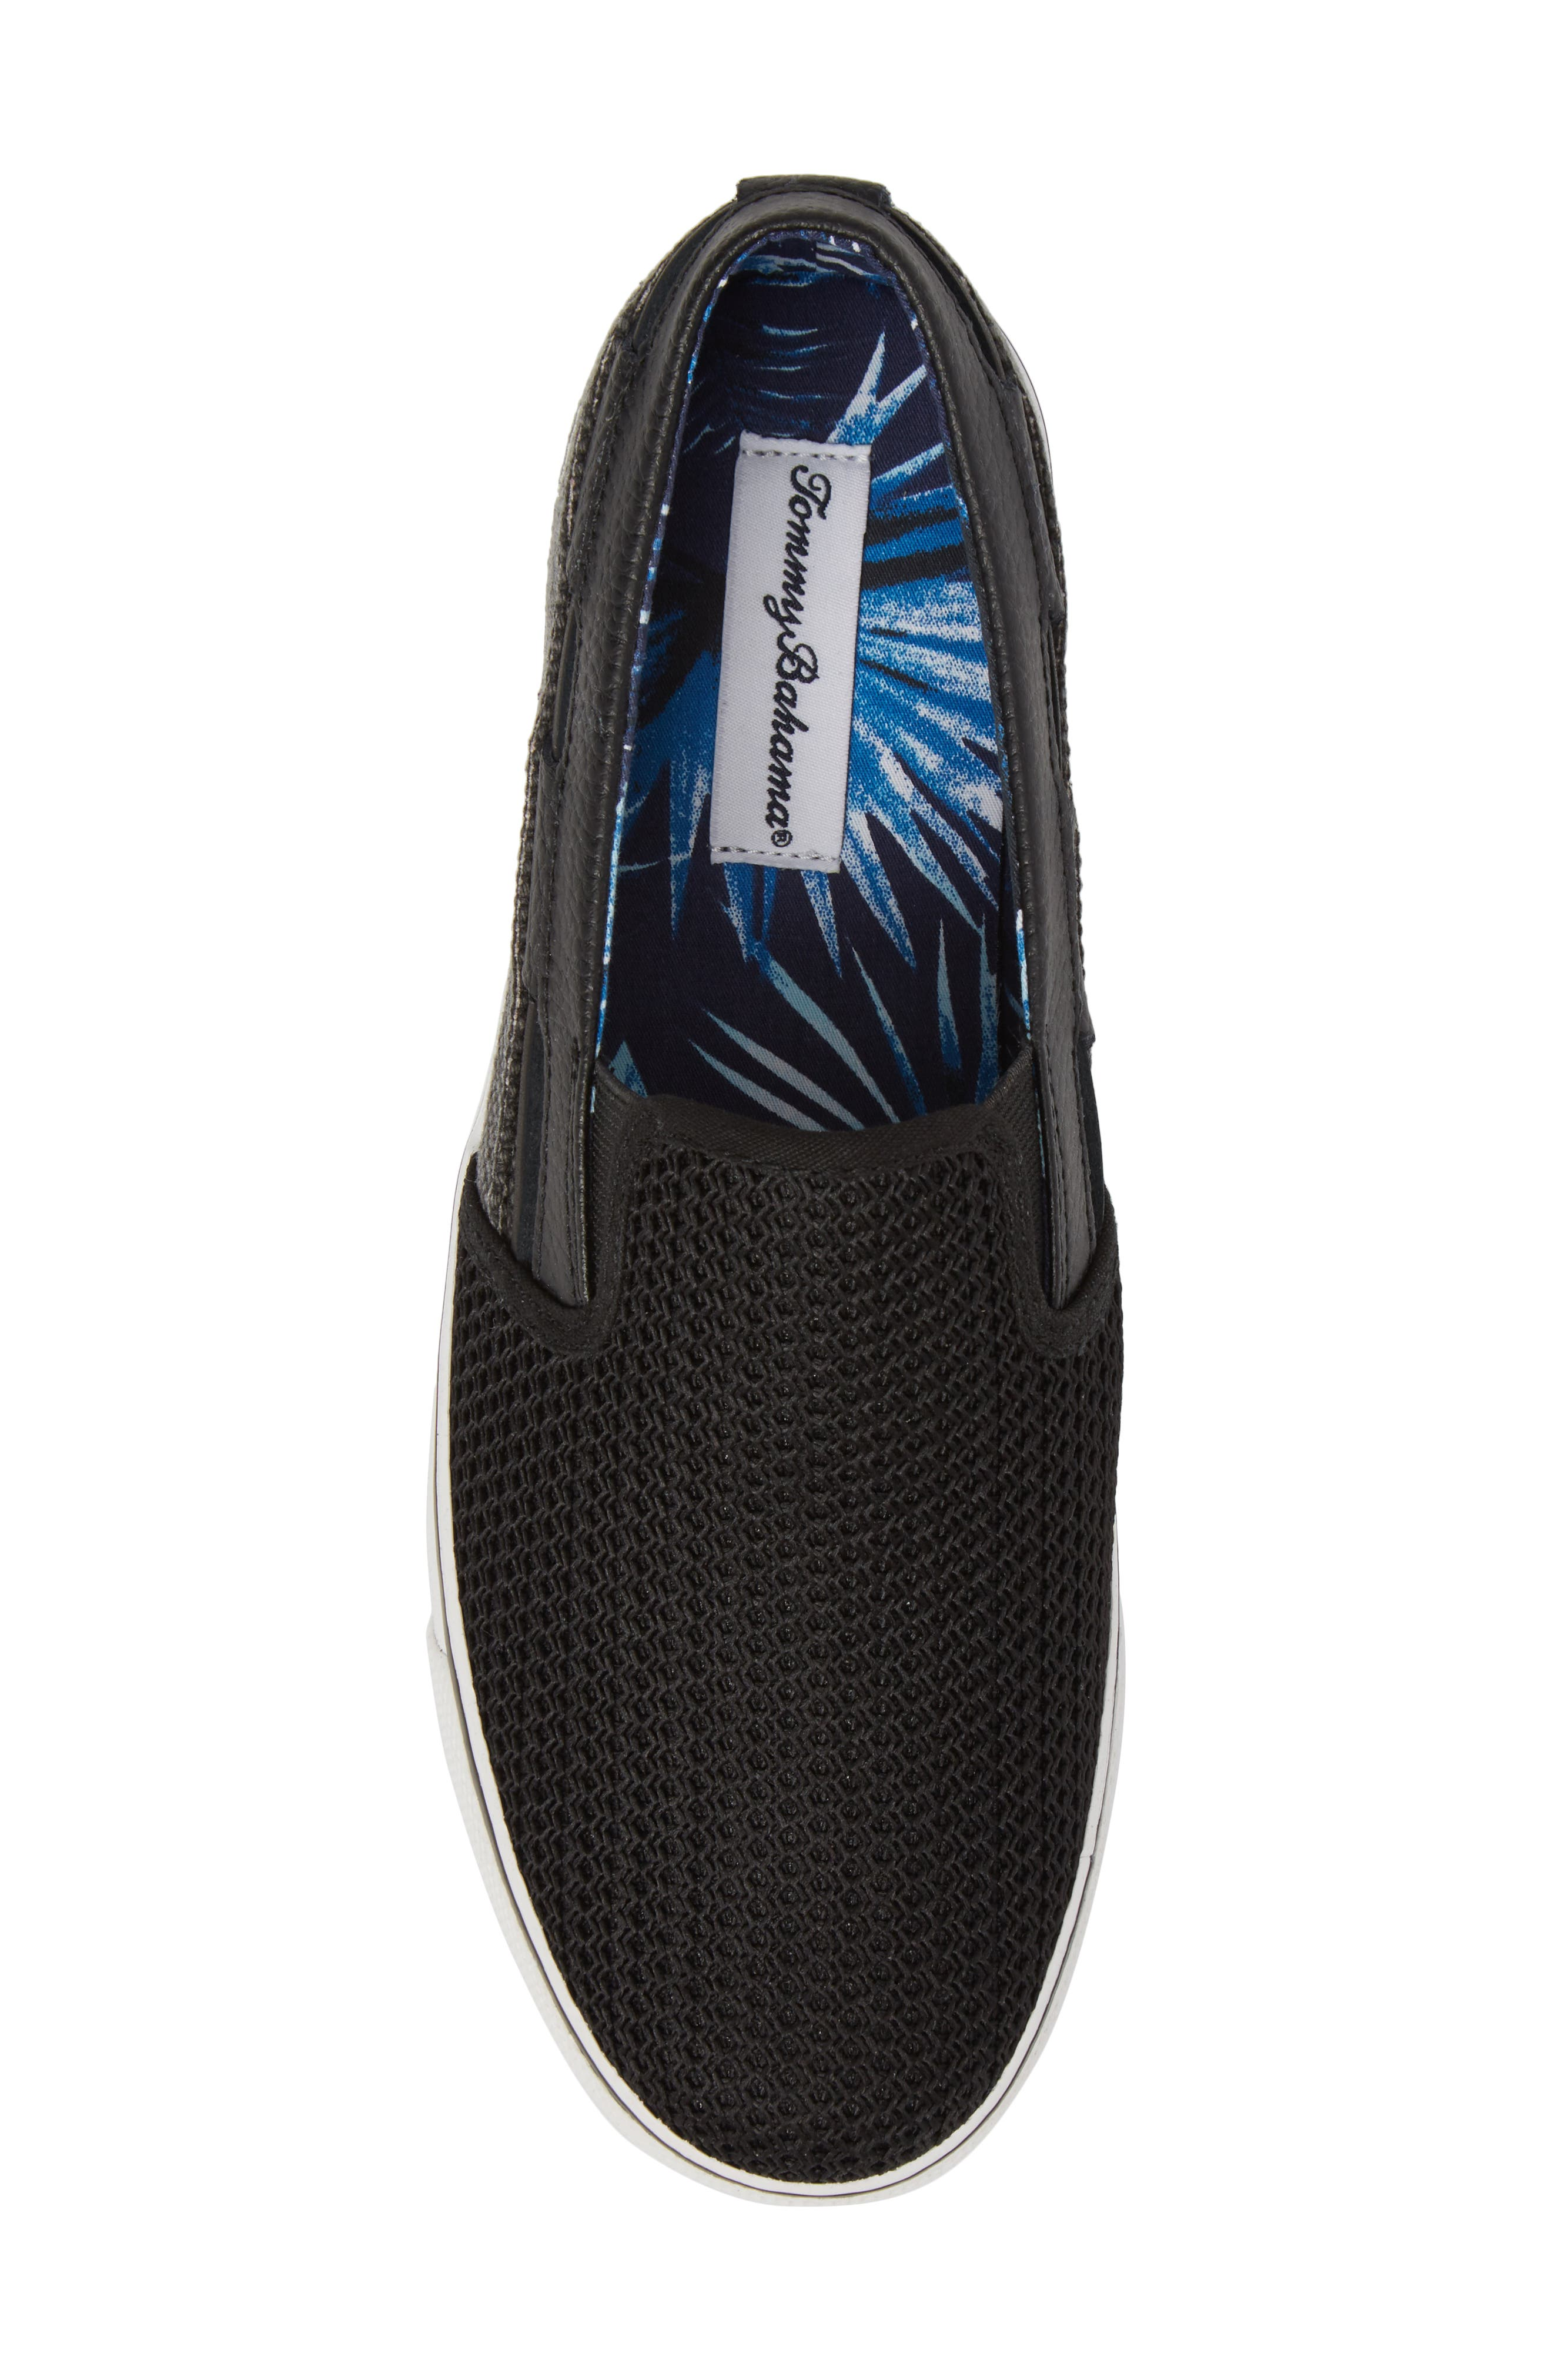 Exodus Mesh Slip-On Sneaker,                             Alternate thumbnail 5, color,                             BLACK MESH/ TEXTILE